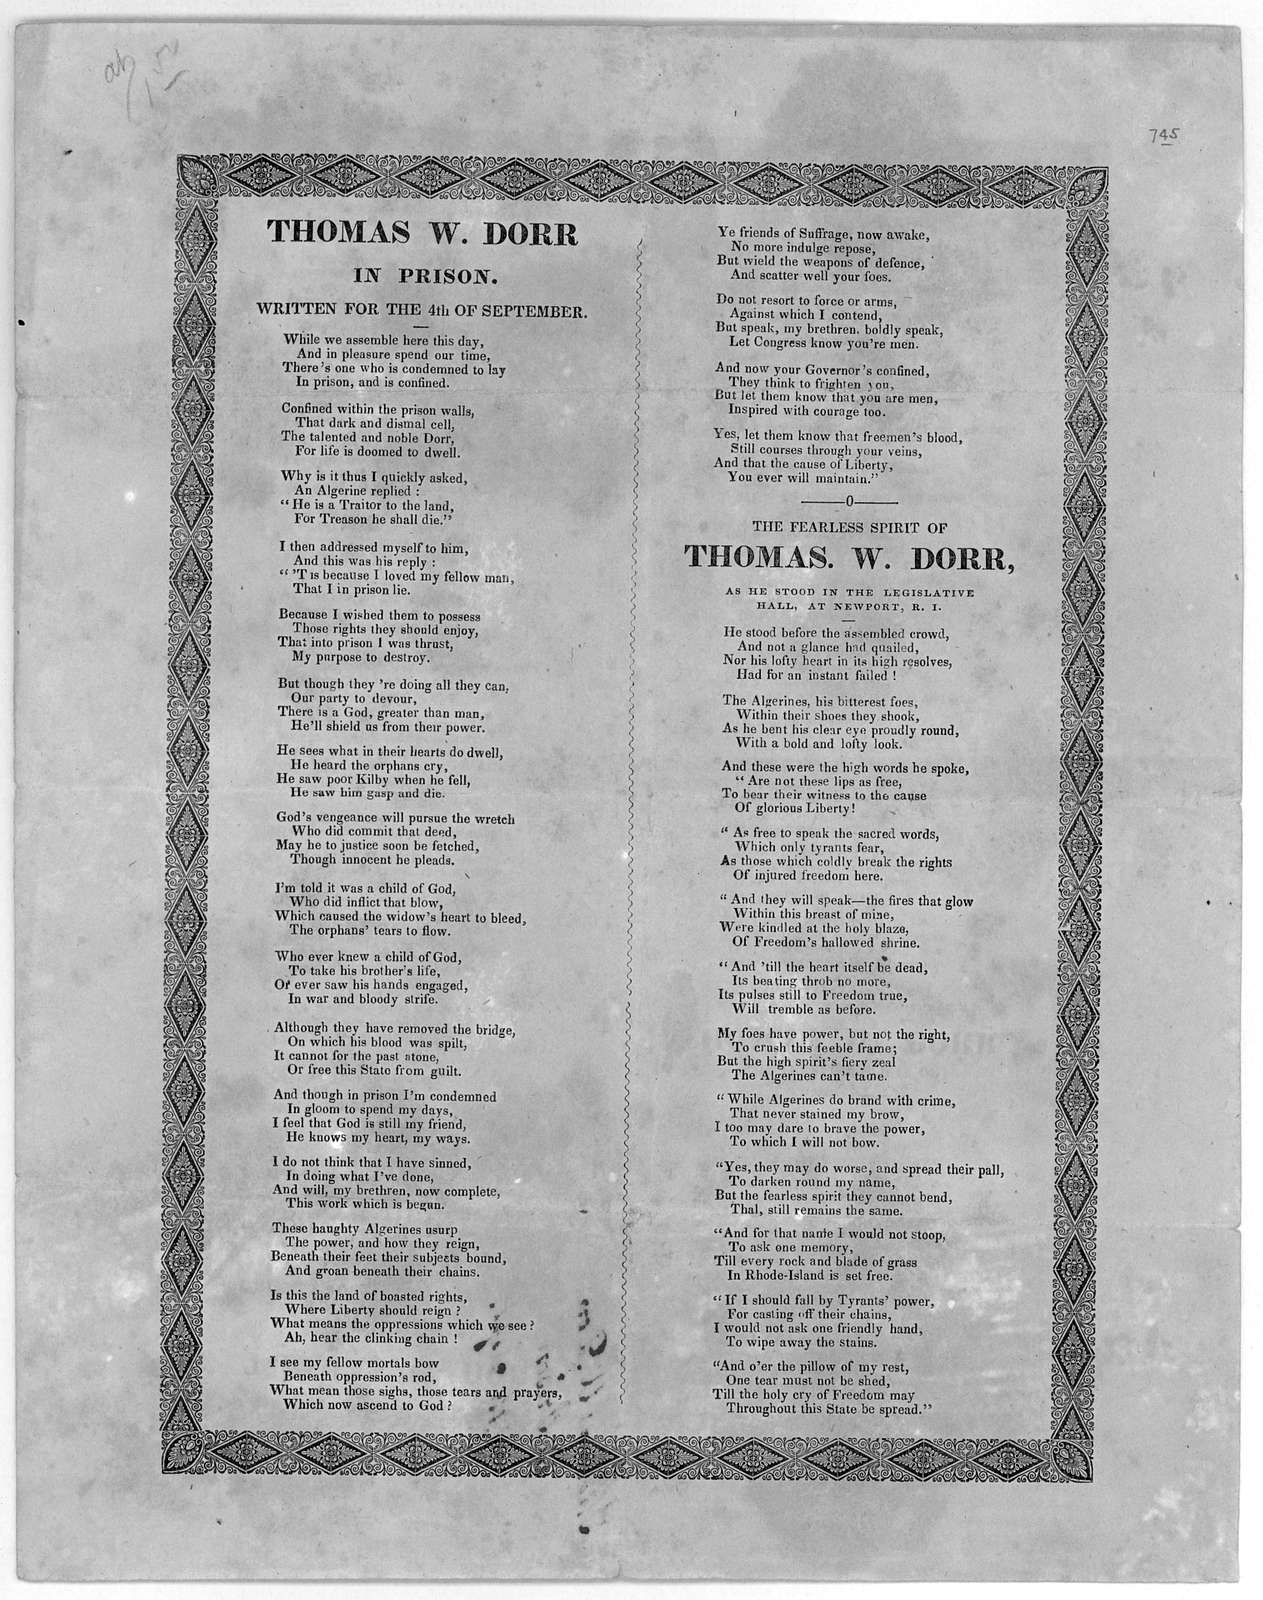 Thomas W. Dorr in prison. Written for the 4th of September ... The fearless spirit of Thomas W. Dorr, as he stood in the legislative hall, at Newport, R. I. [1842].